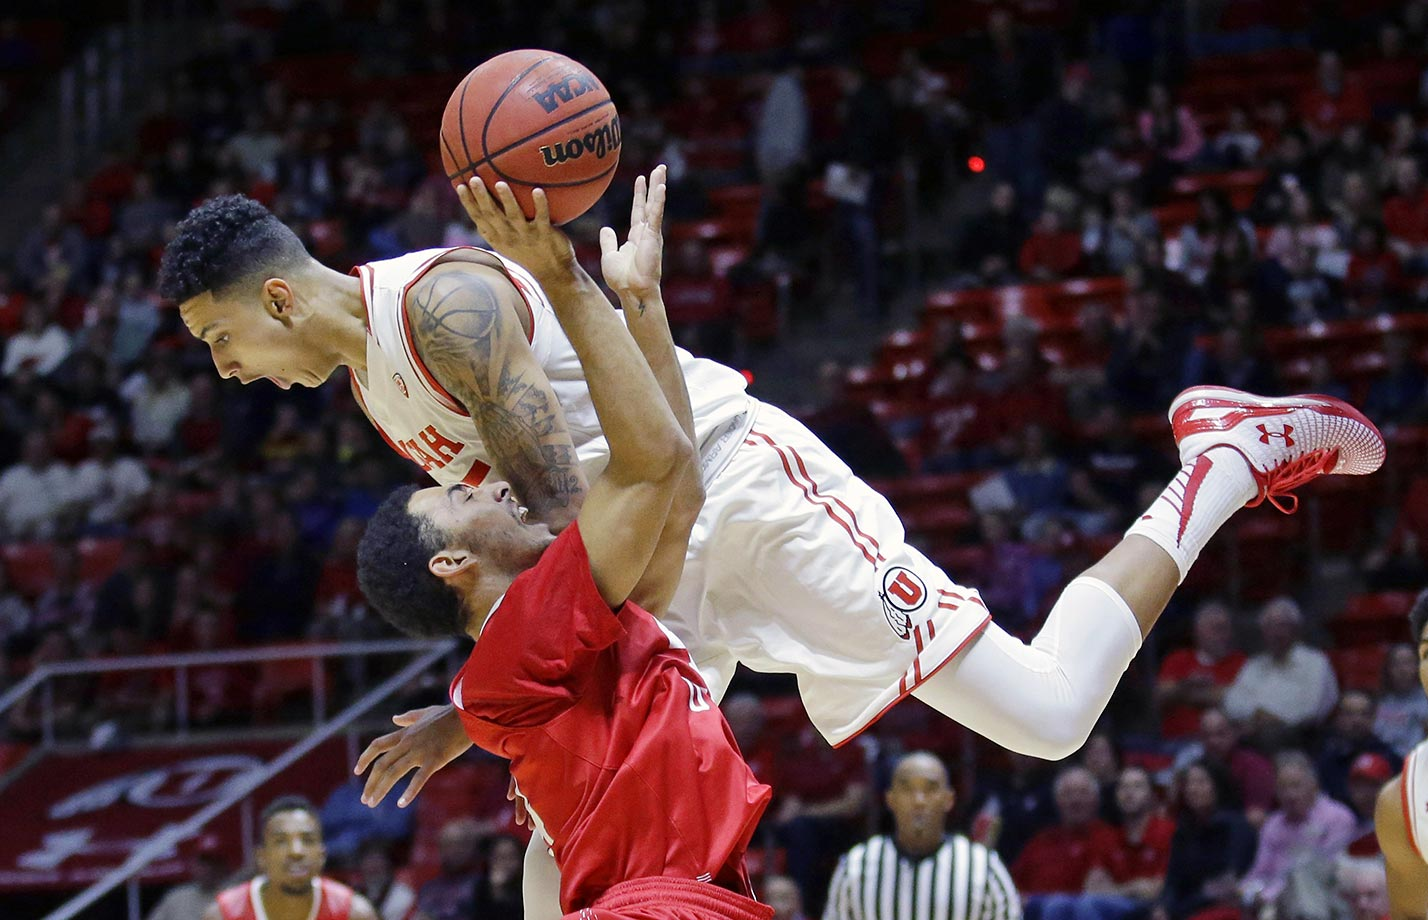 Kyle Kuzma of Utah fouls Trey Kennedy of Southern Utah.